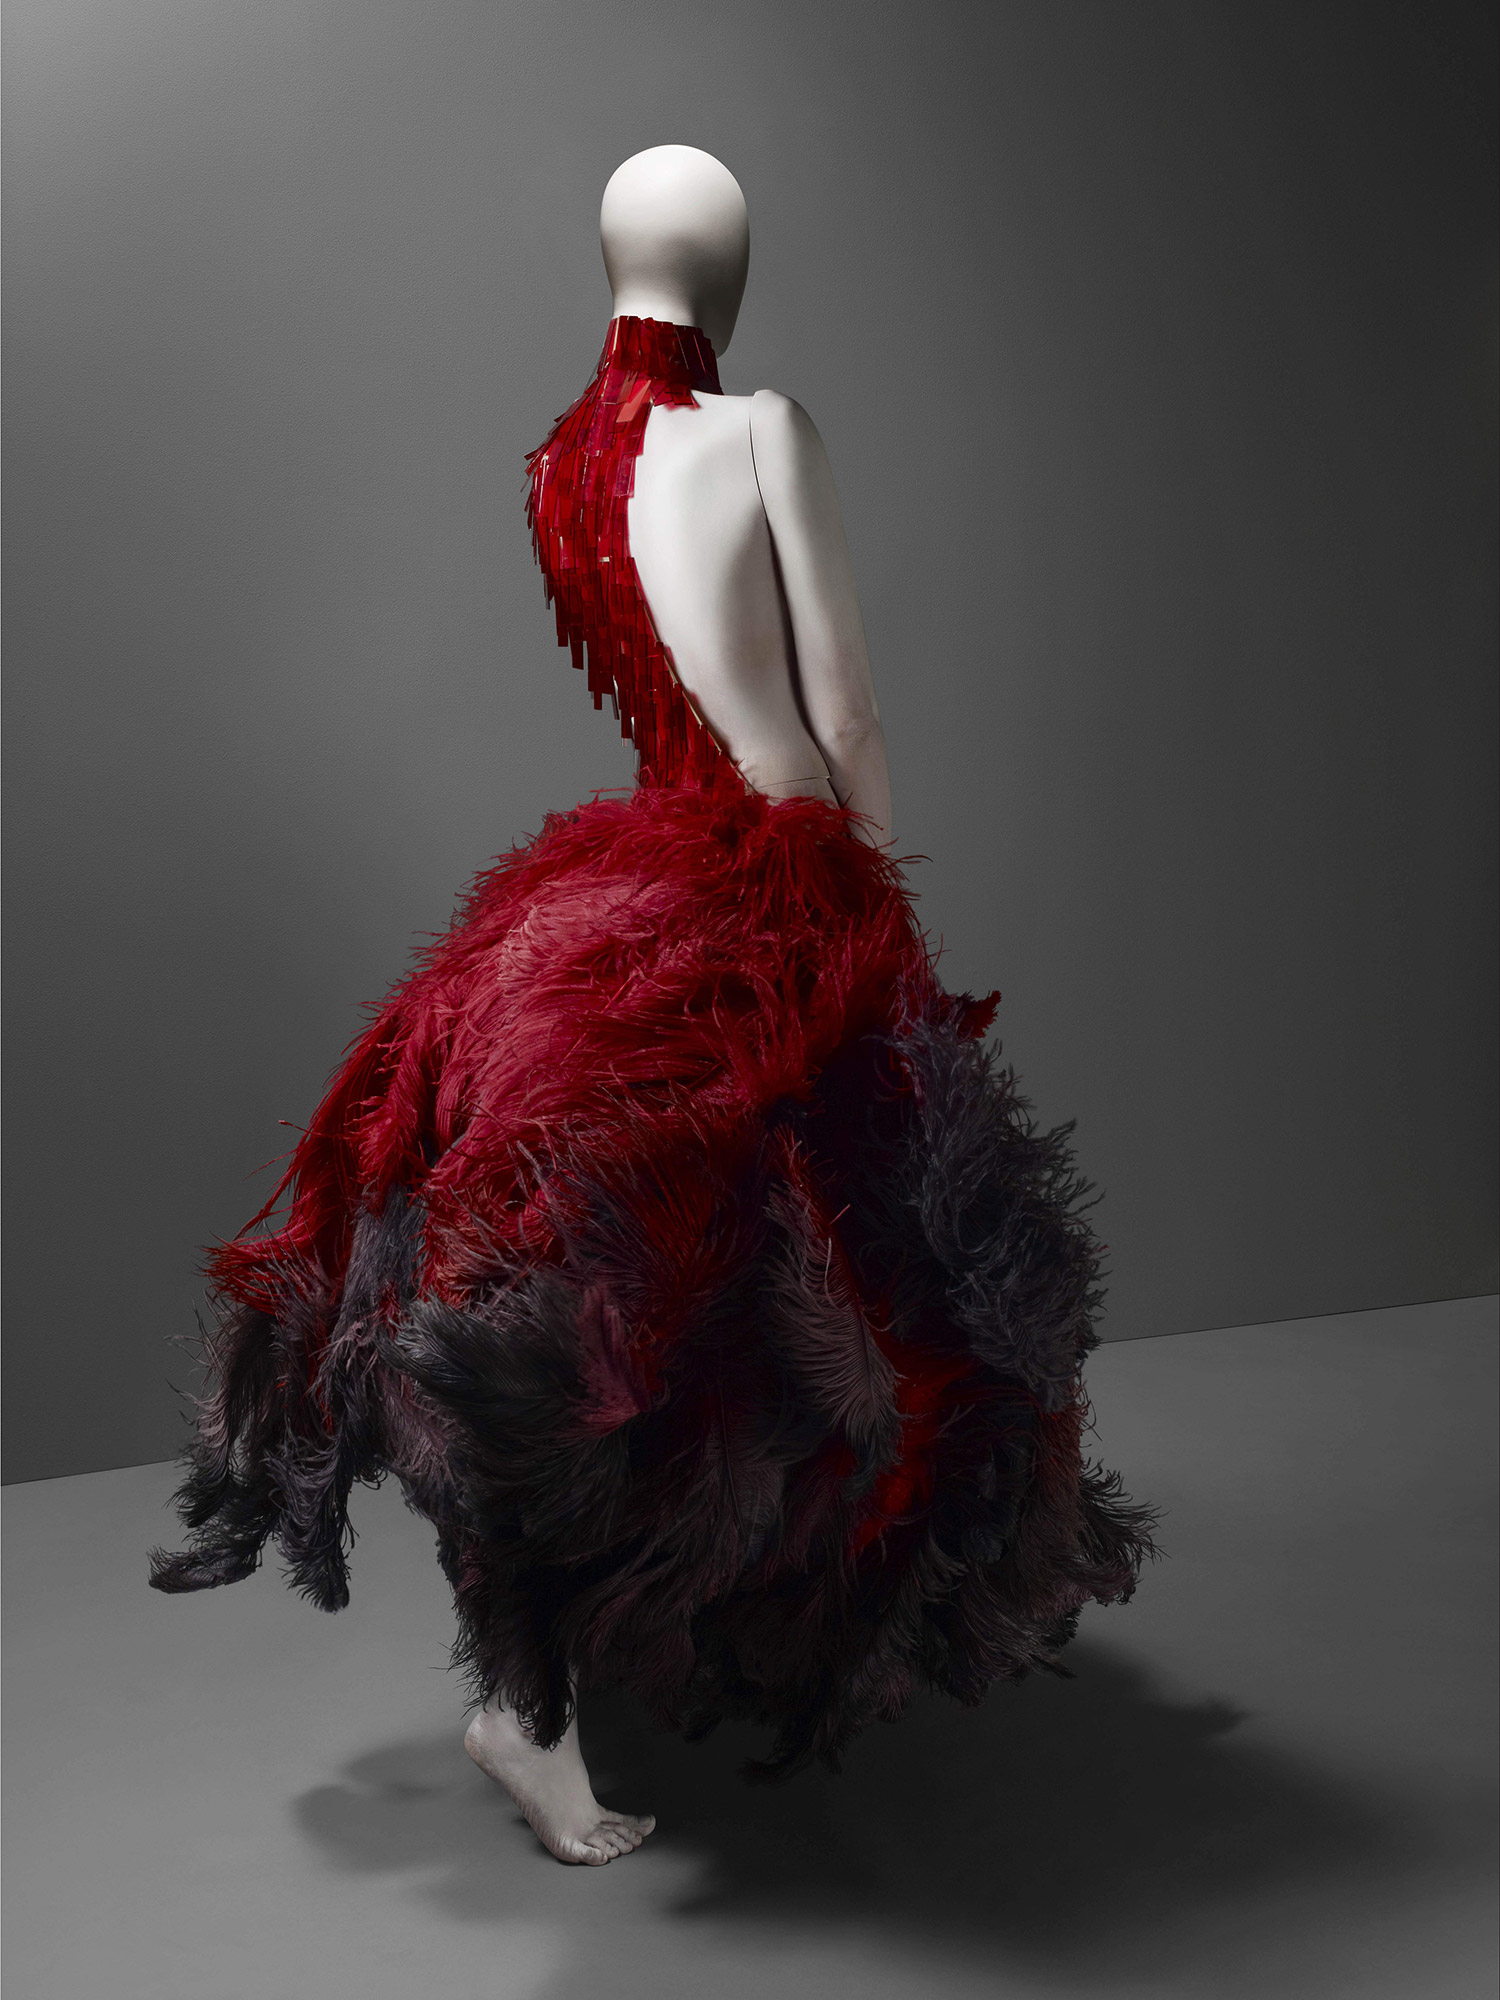 VOSS, spring/summer 2001 Red and black ostrich feathers and glass medical slides painted red